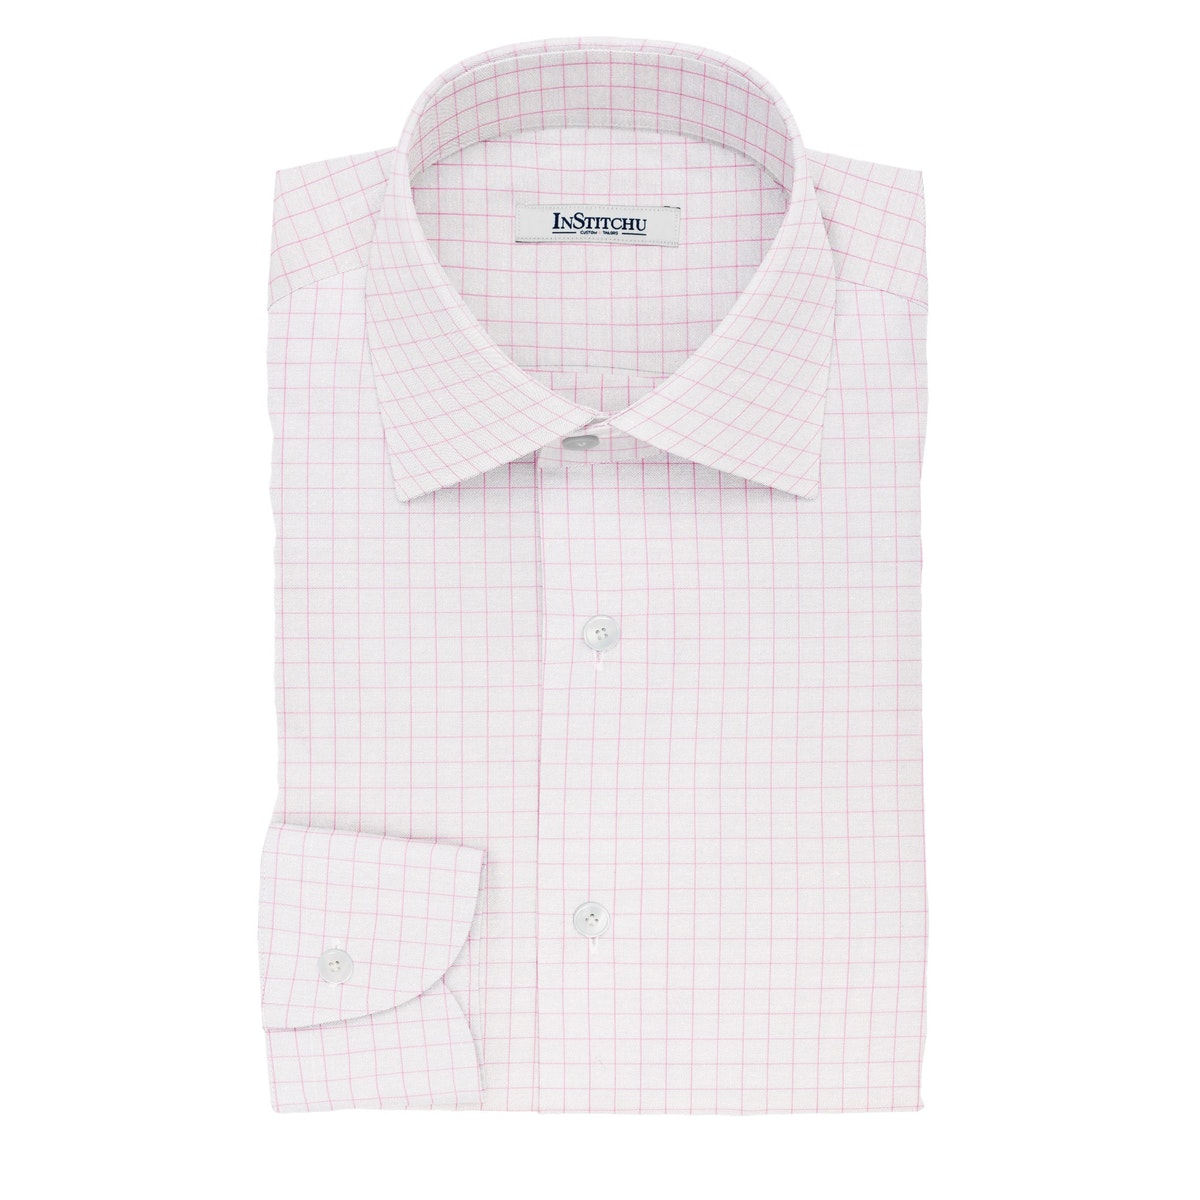 InStitchu Collection The Wilde Pink Windowpane Cotton Shirt